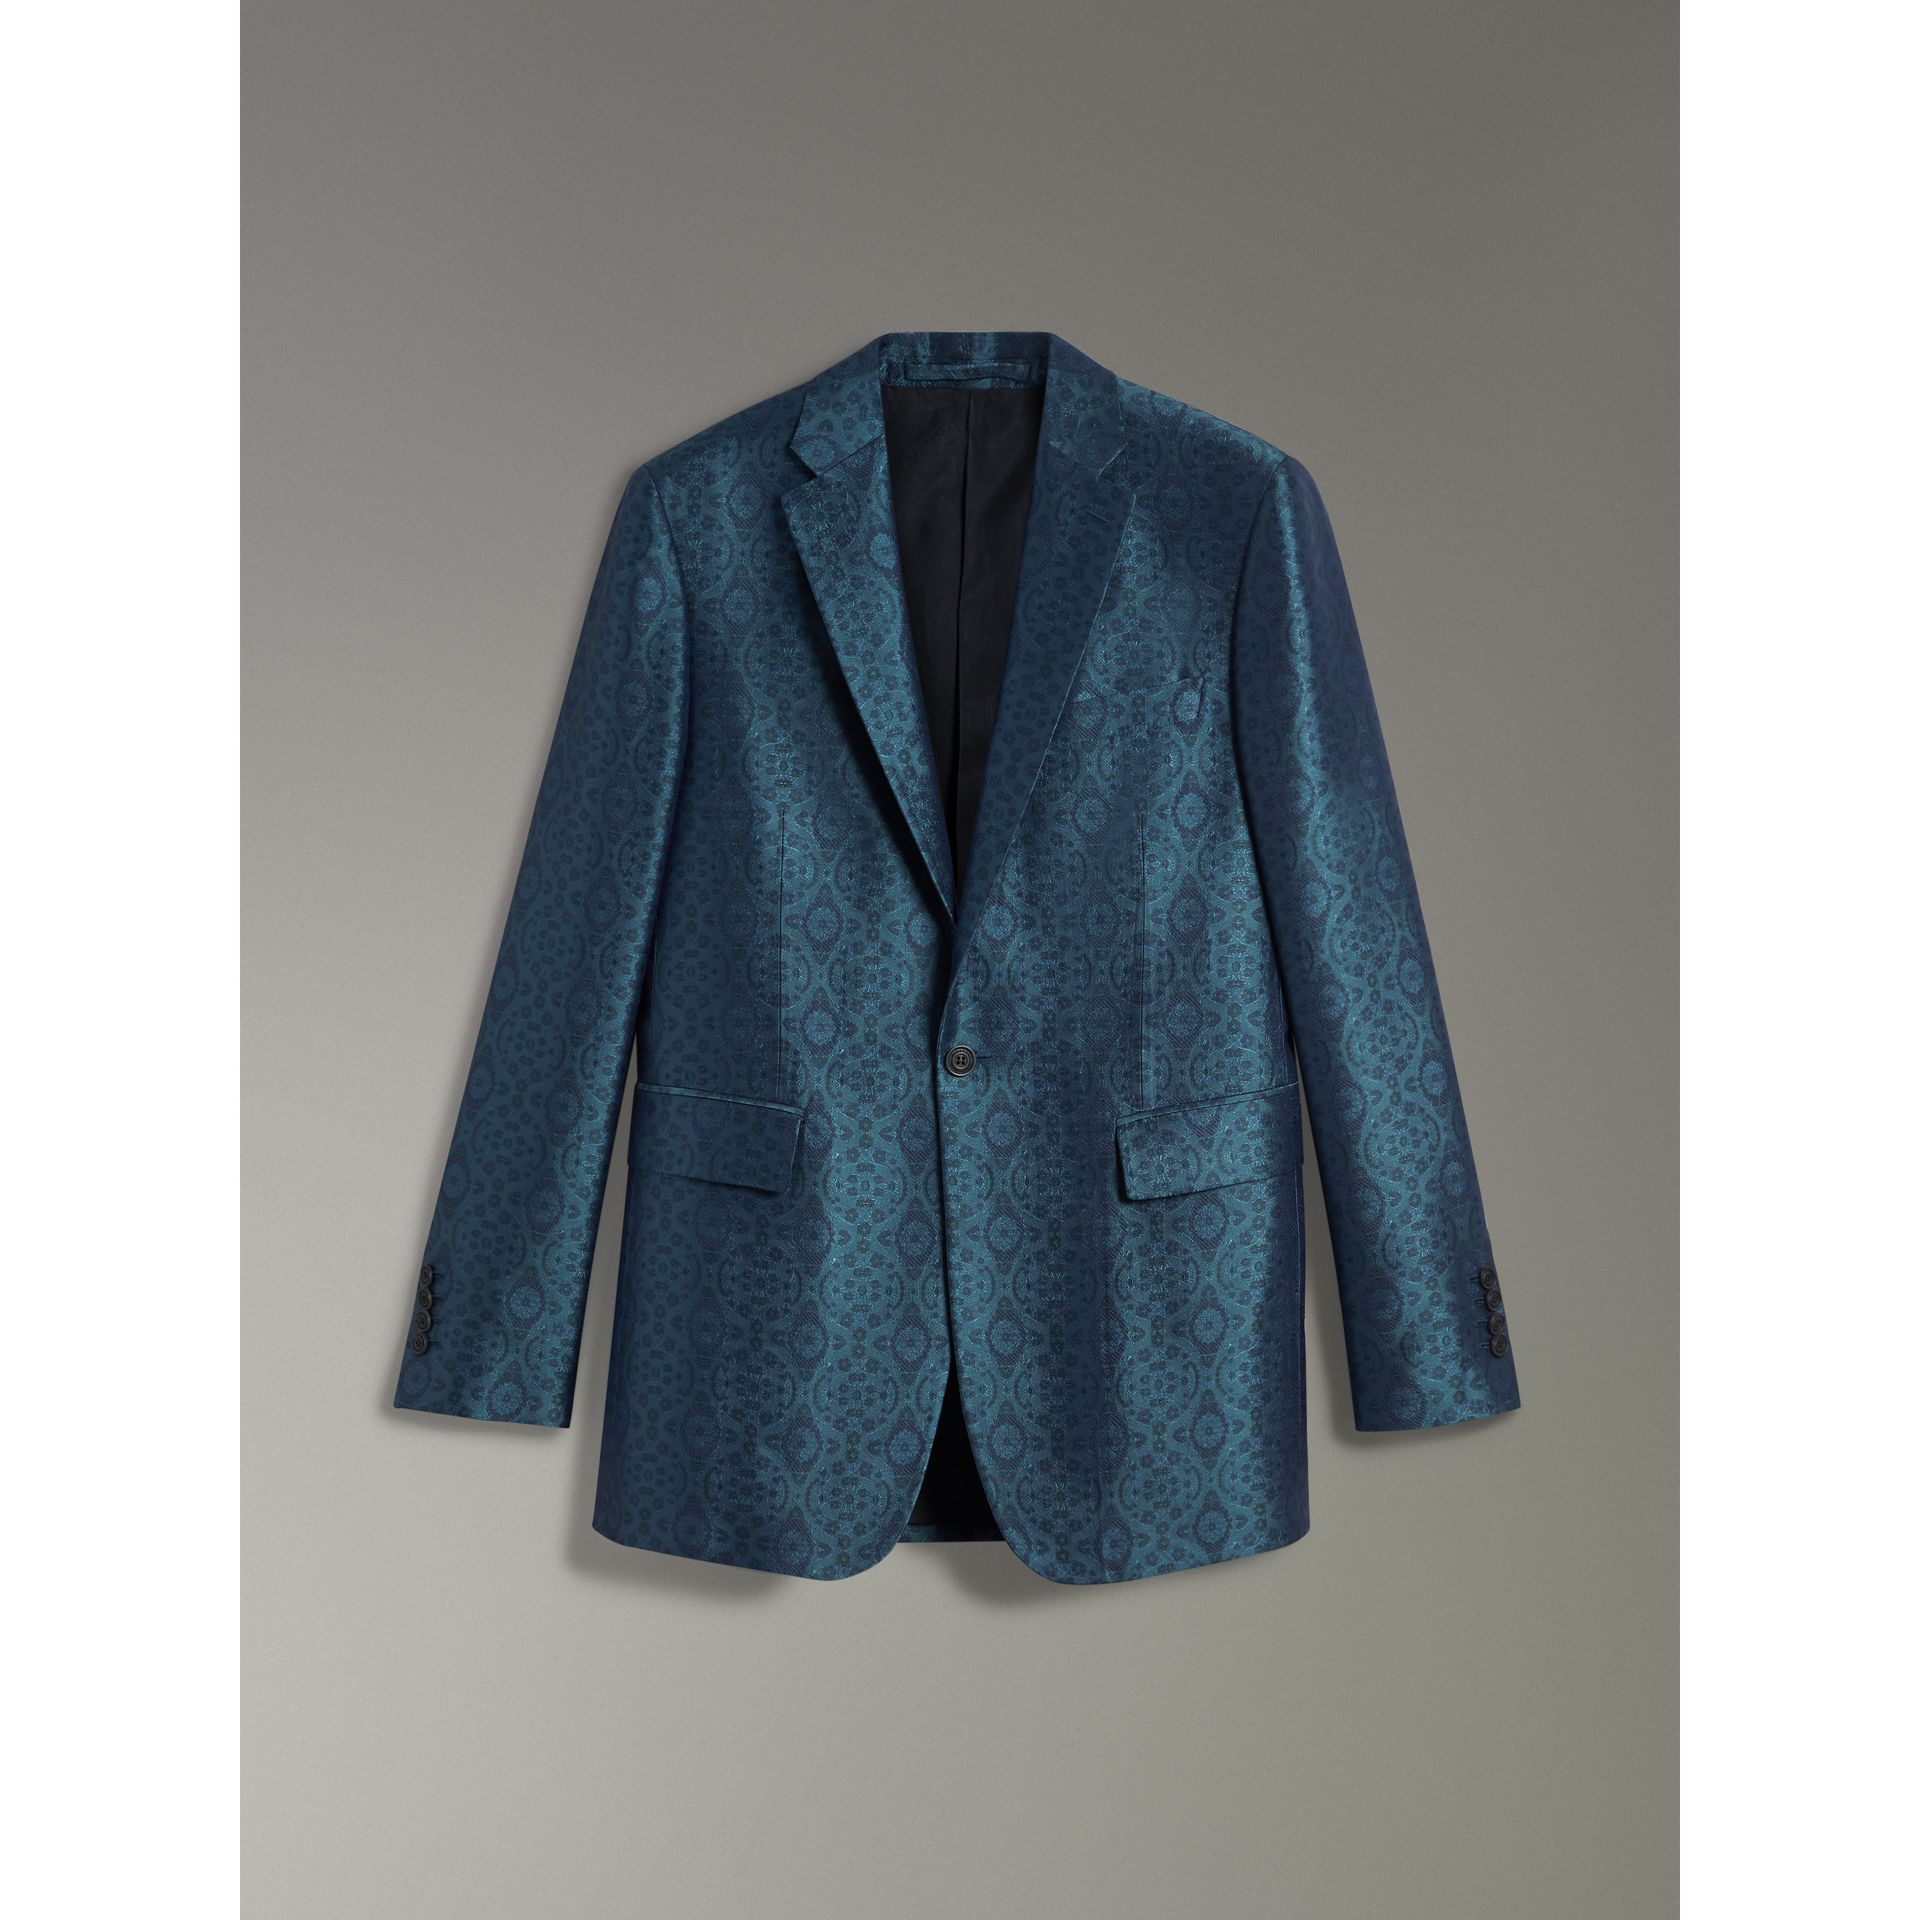 Soho Fit Geometric Silk Jacquard Suit in Dark Teal - Men | Burberry - gallery image 3